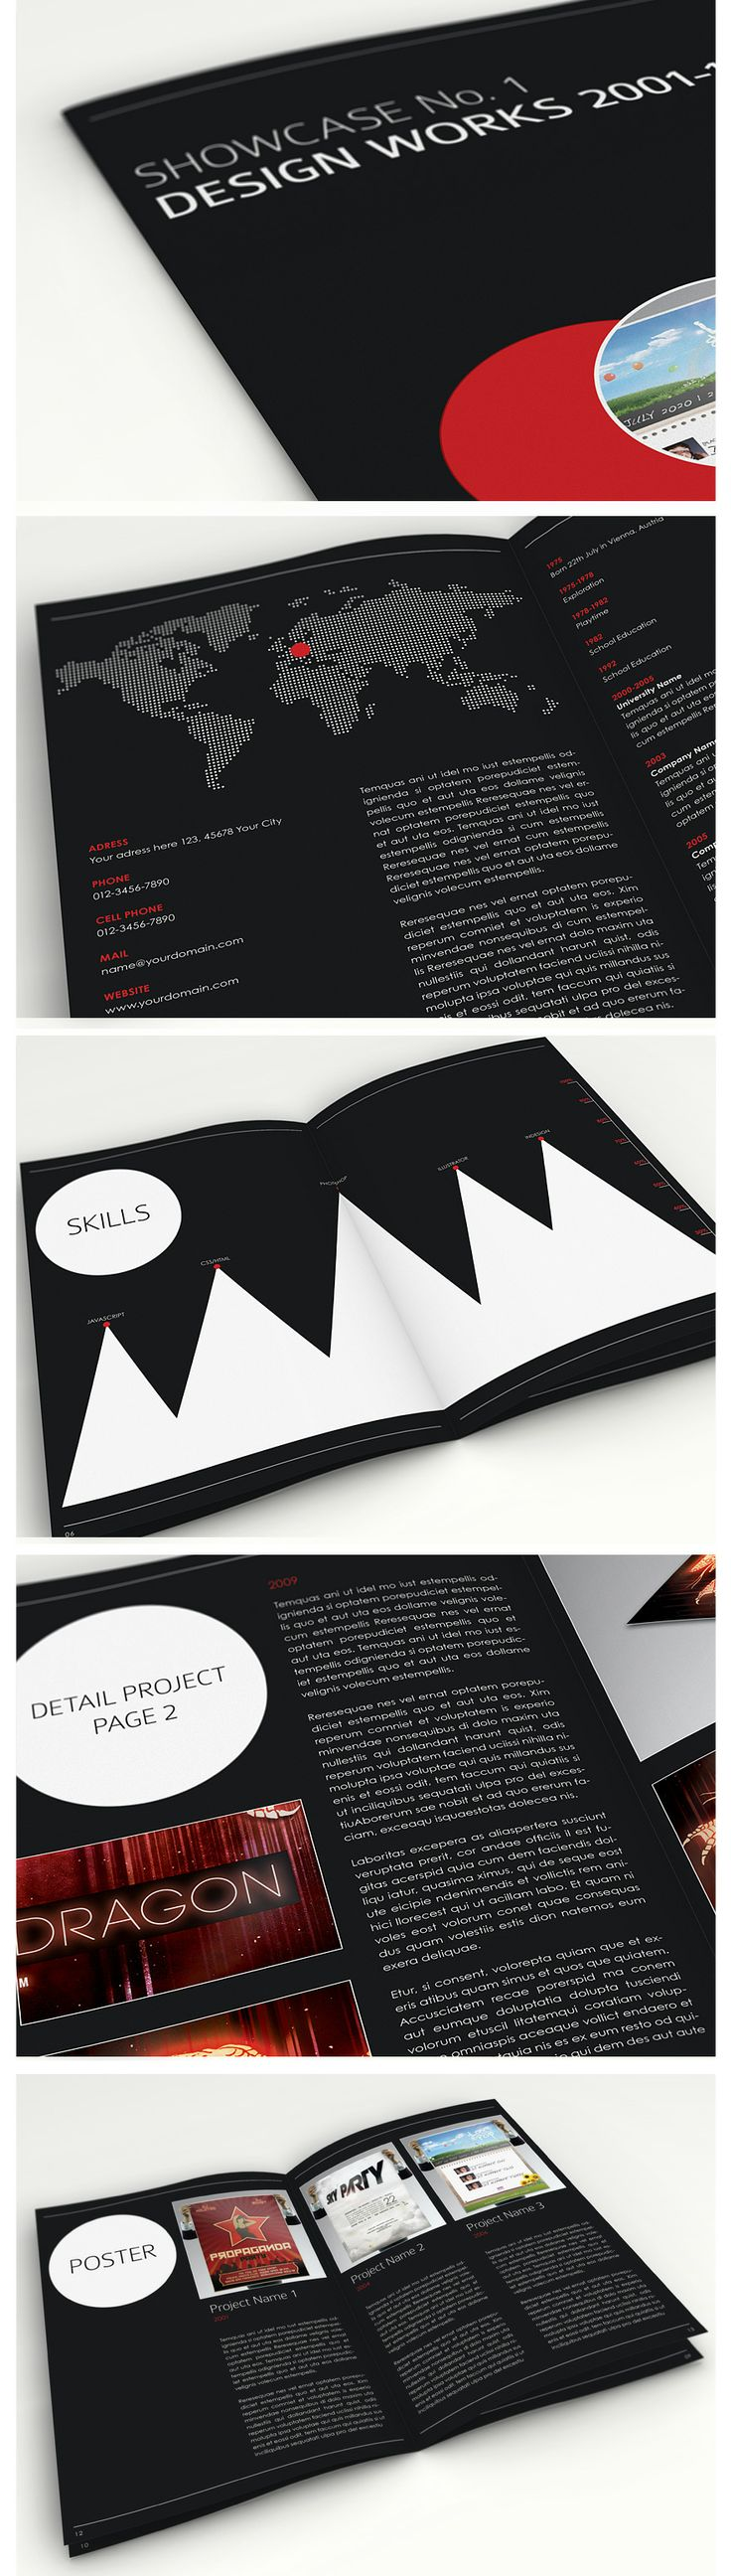 Showcase No. 1 - Brochure & Book Template #brochure #editorial